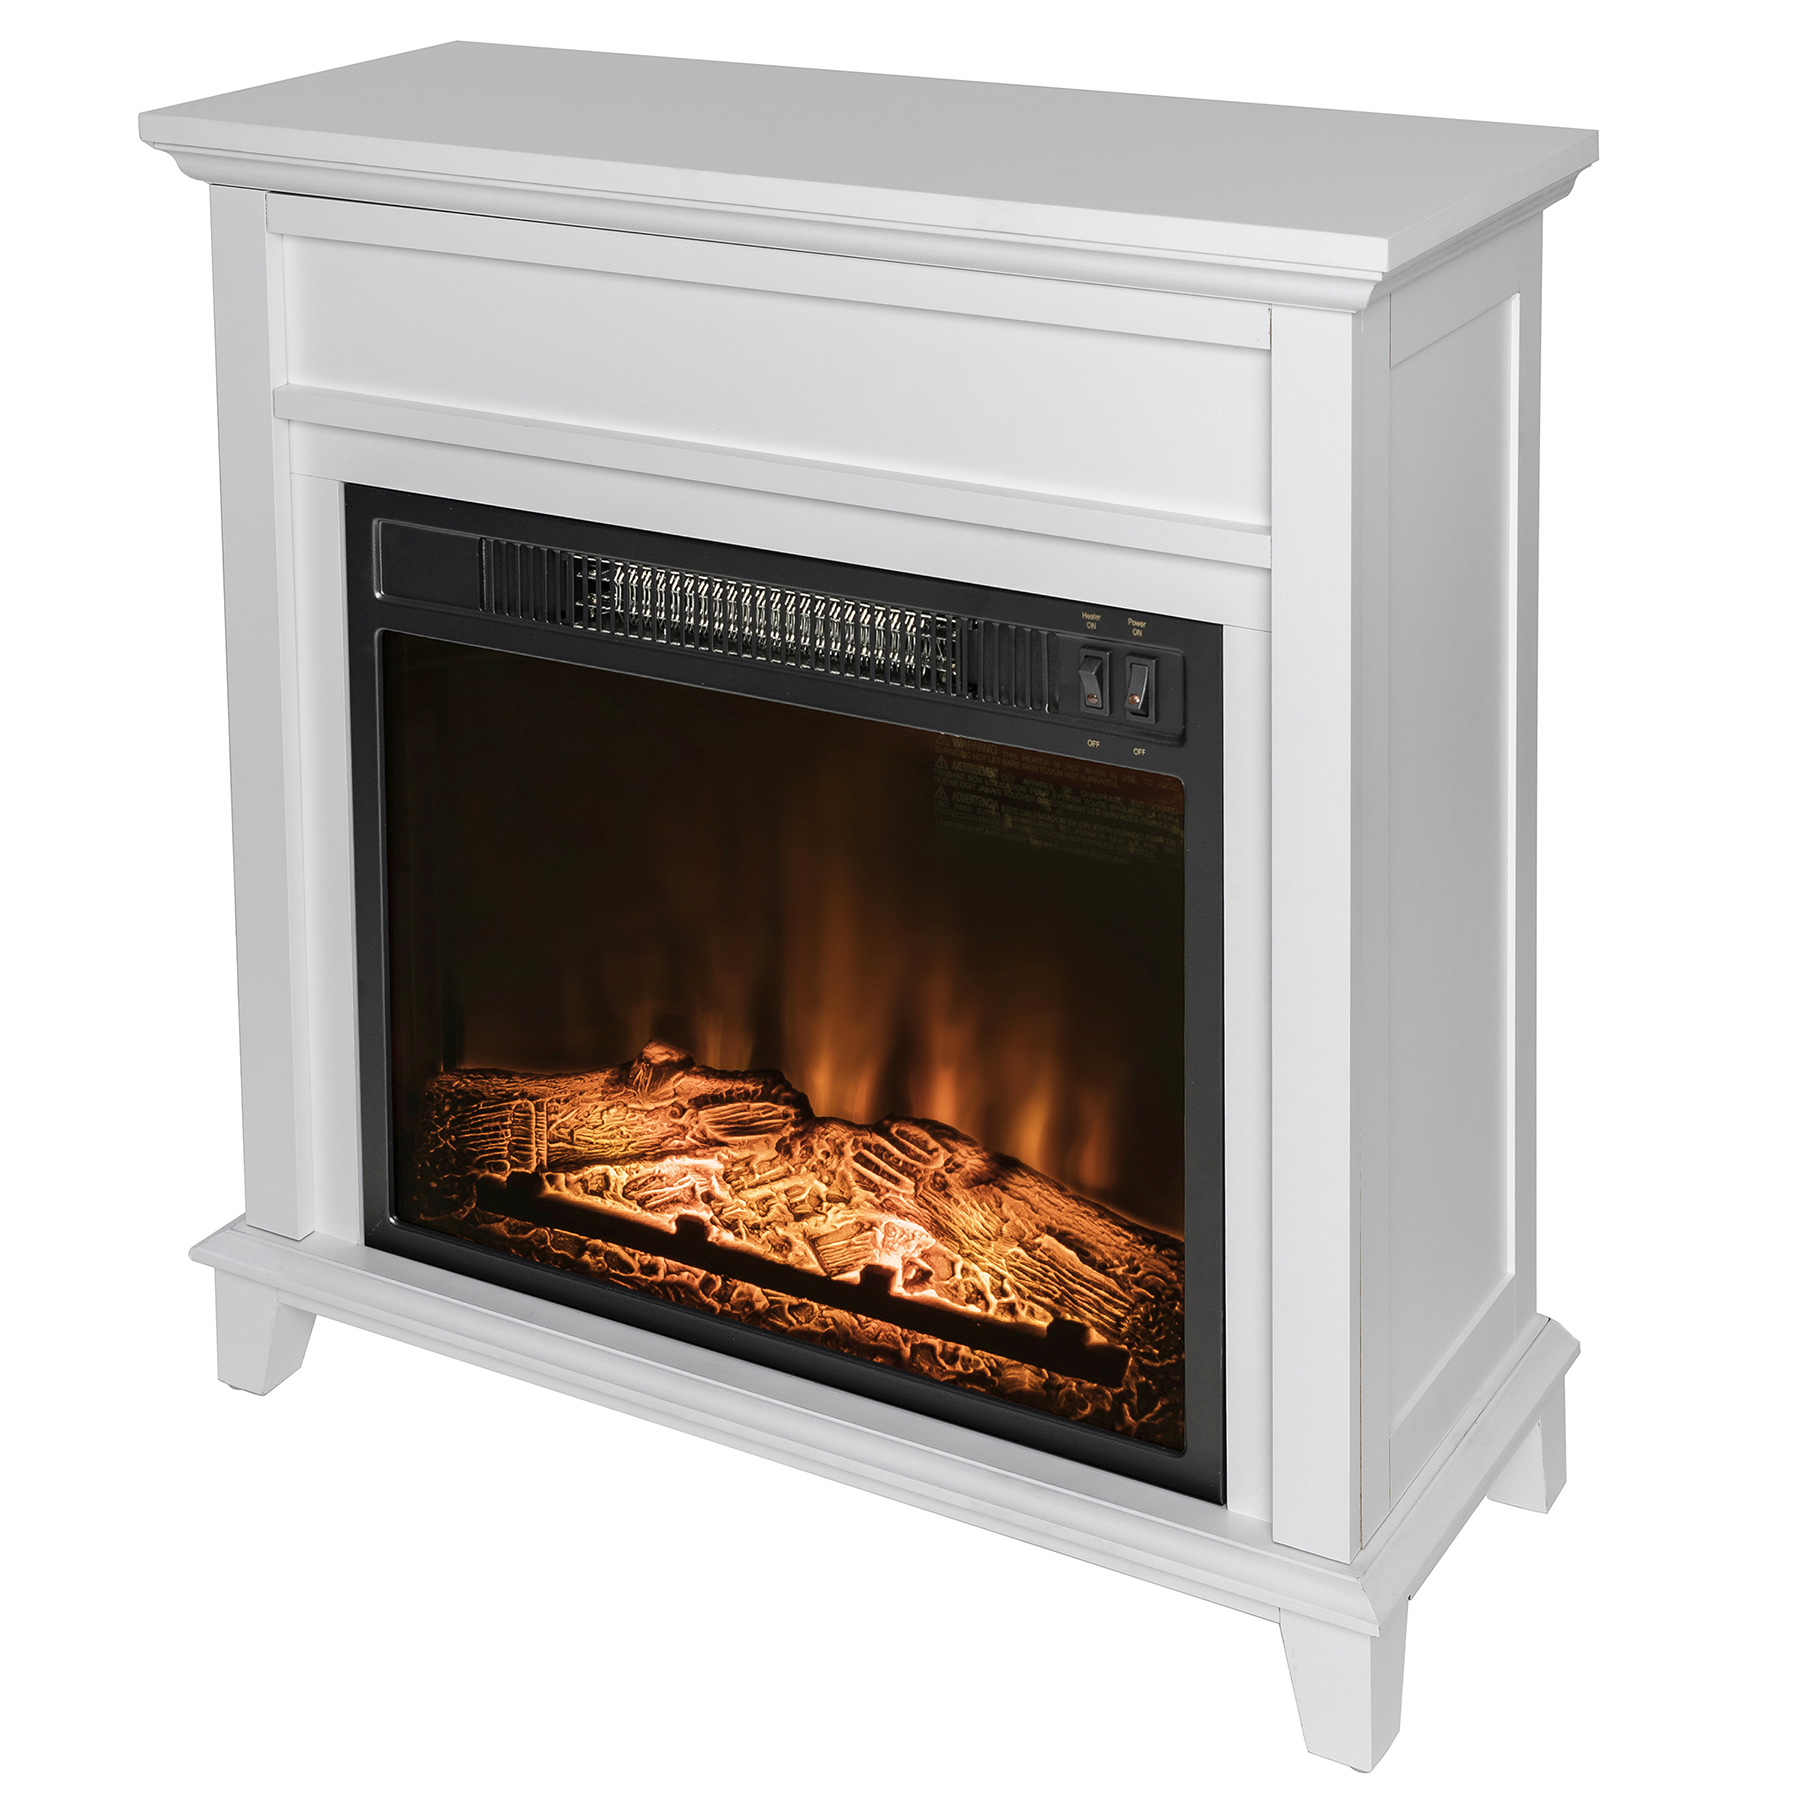 "AKDY FP0094 27"" Electric Fireplace Freestanding White"